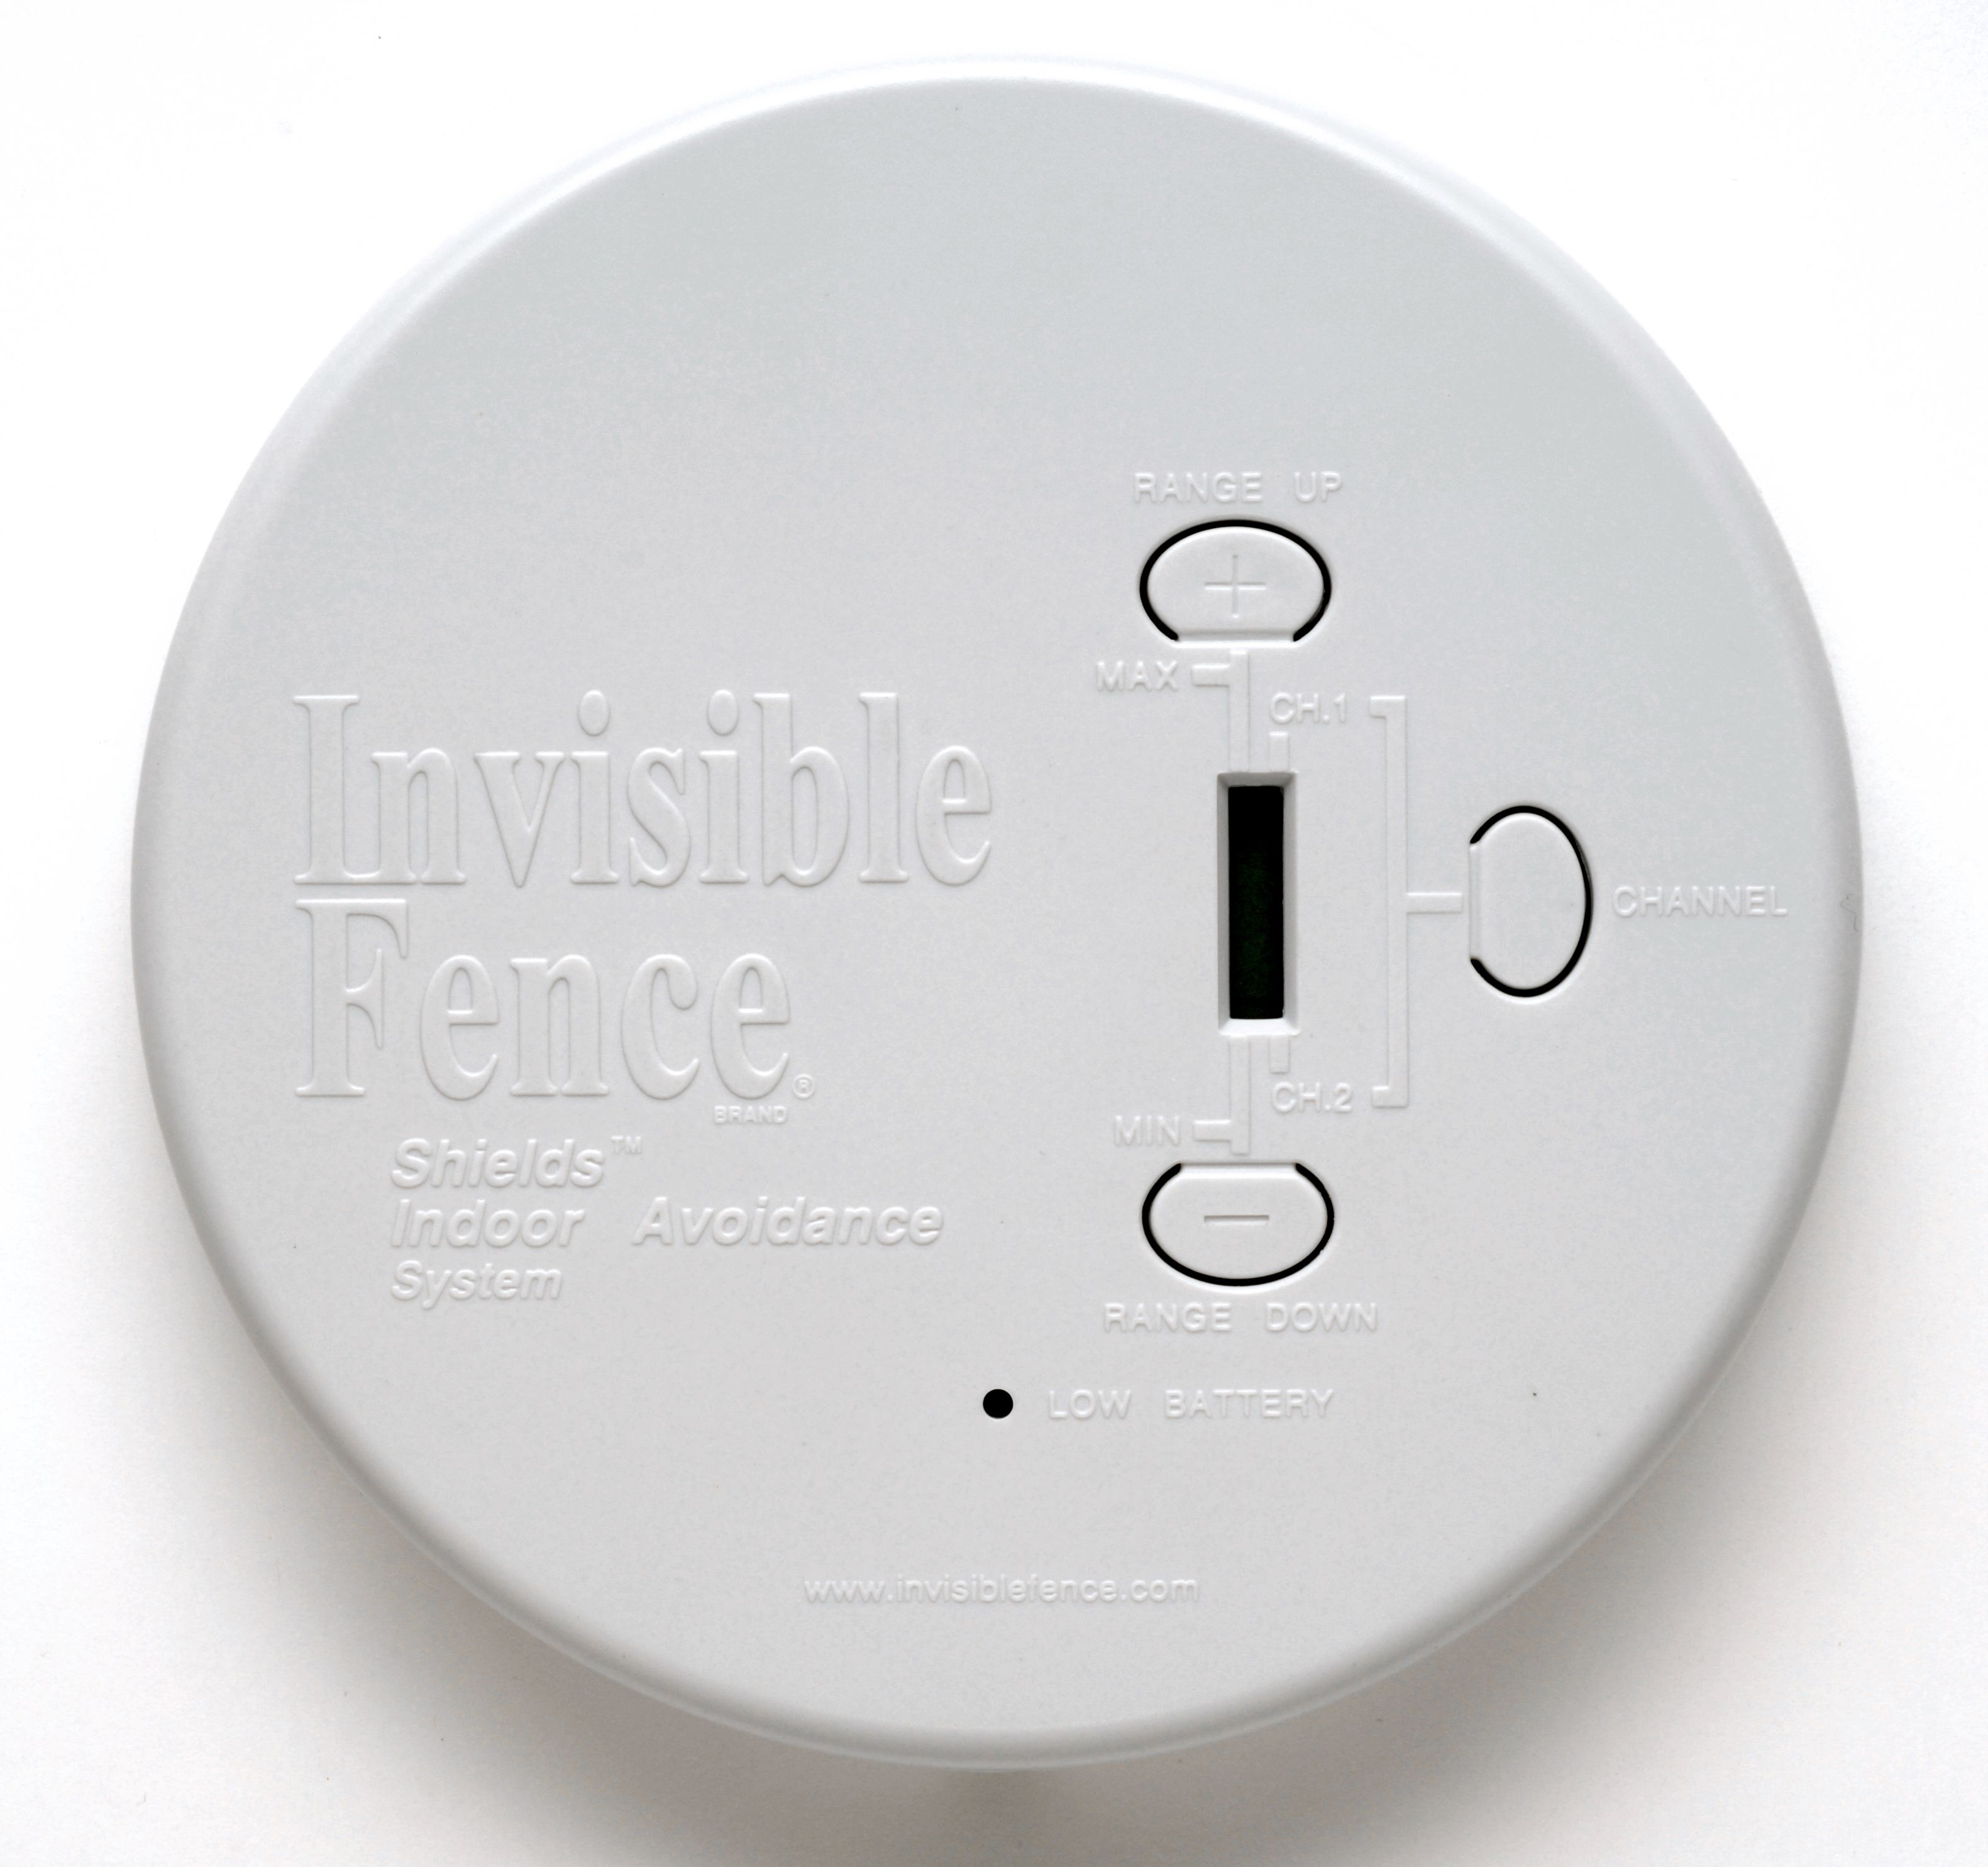 Wireless units are portable and compact, so you can